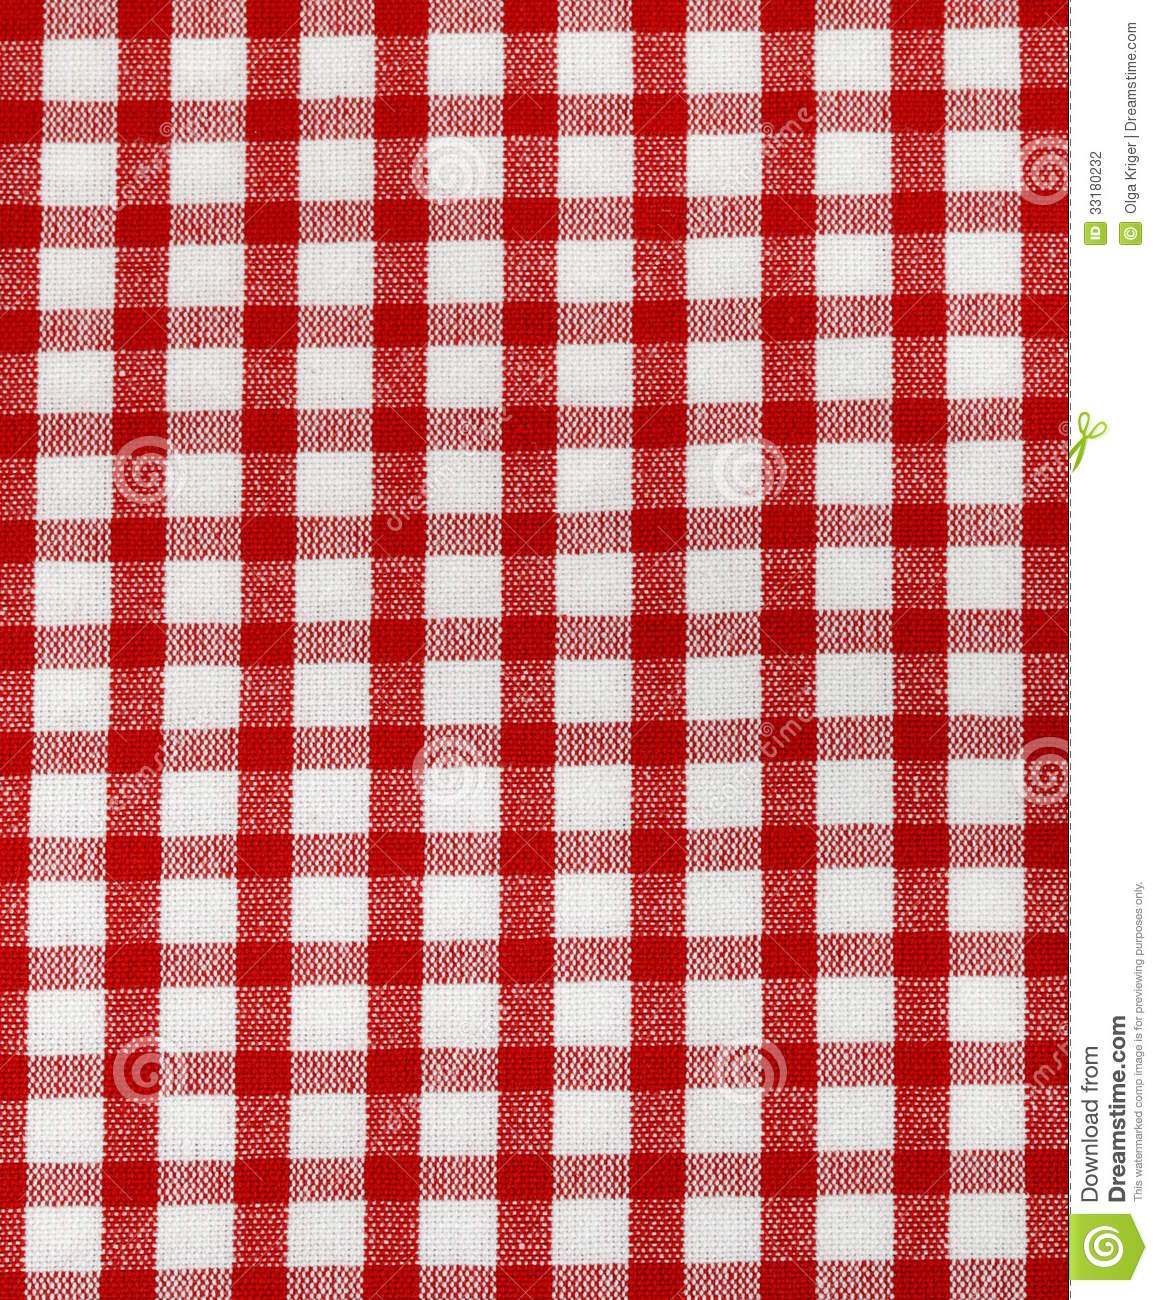 Kitchen Towel In The Red Checkered